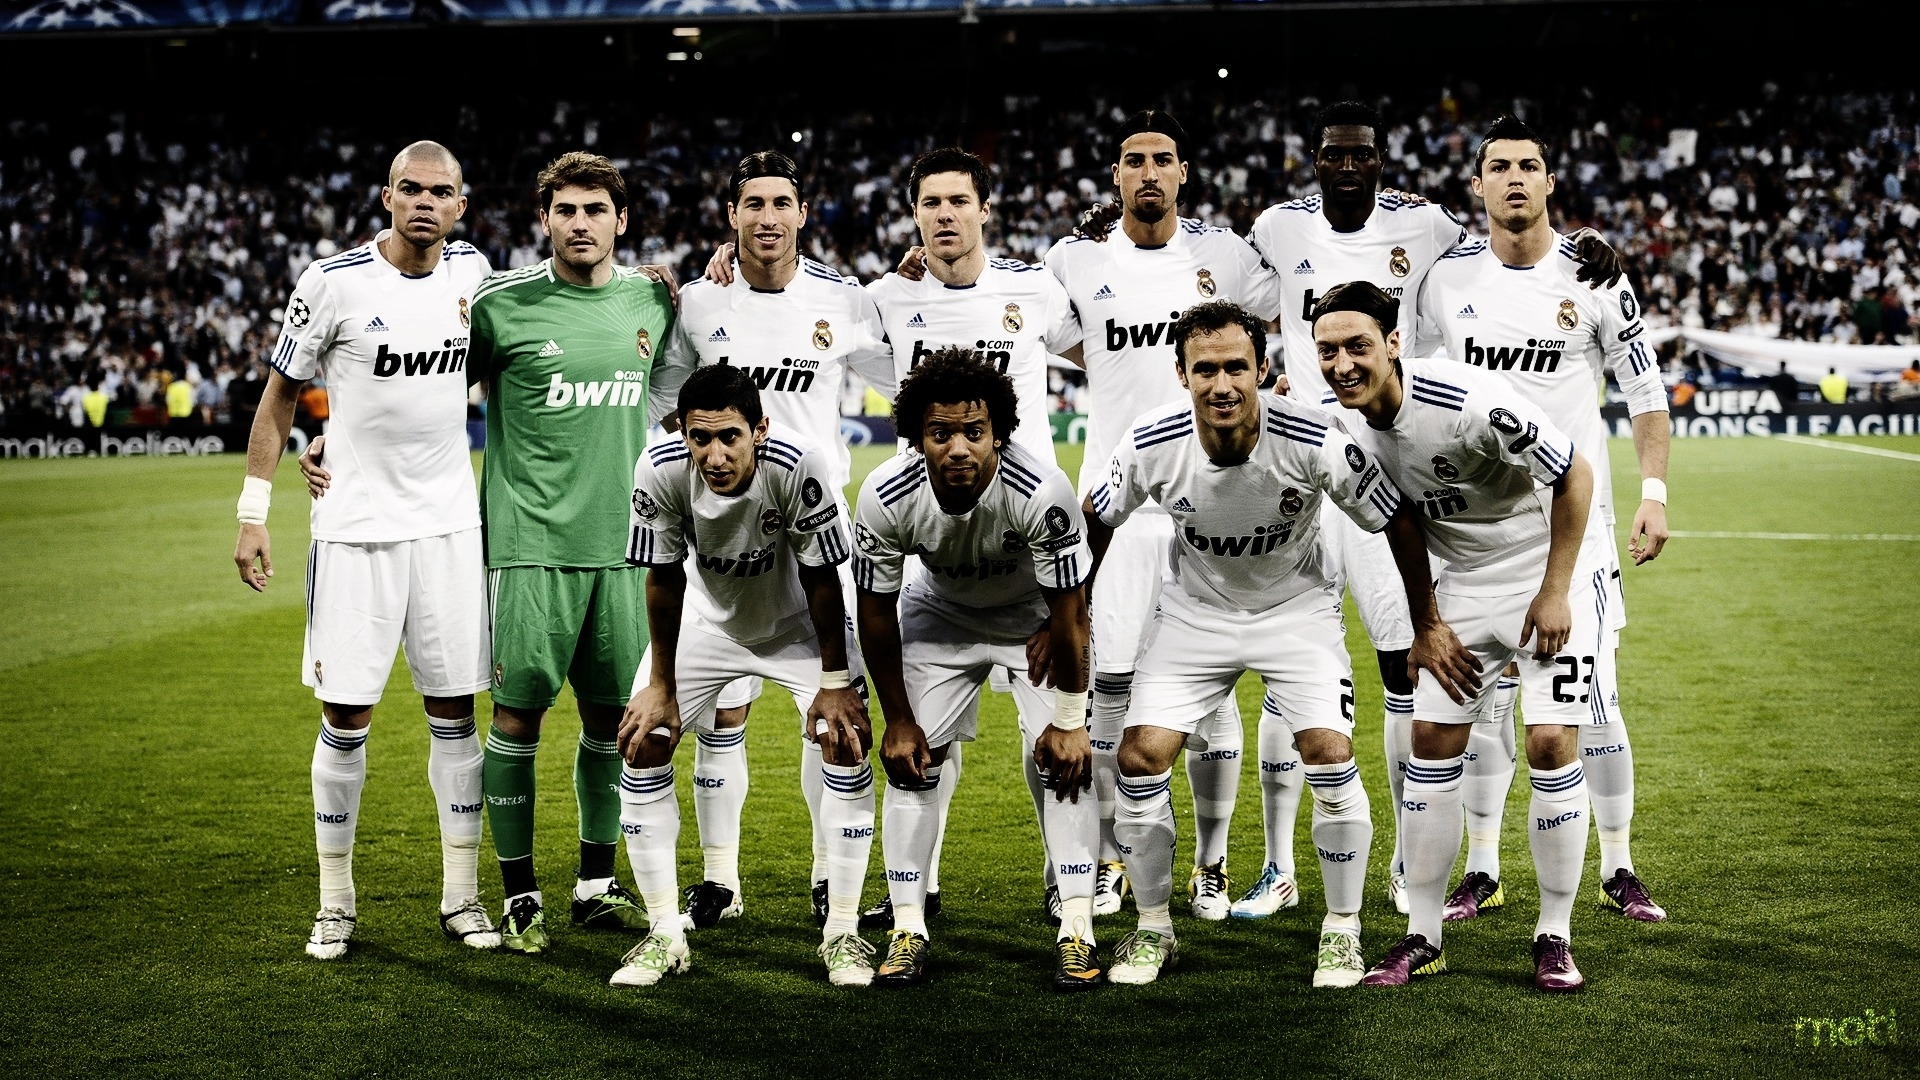 46 Wallpaper Real Madrid 1080p On Wallpapersafari